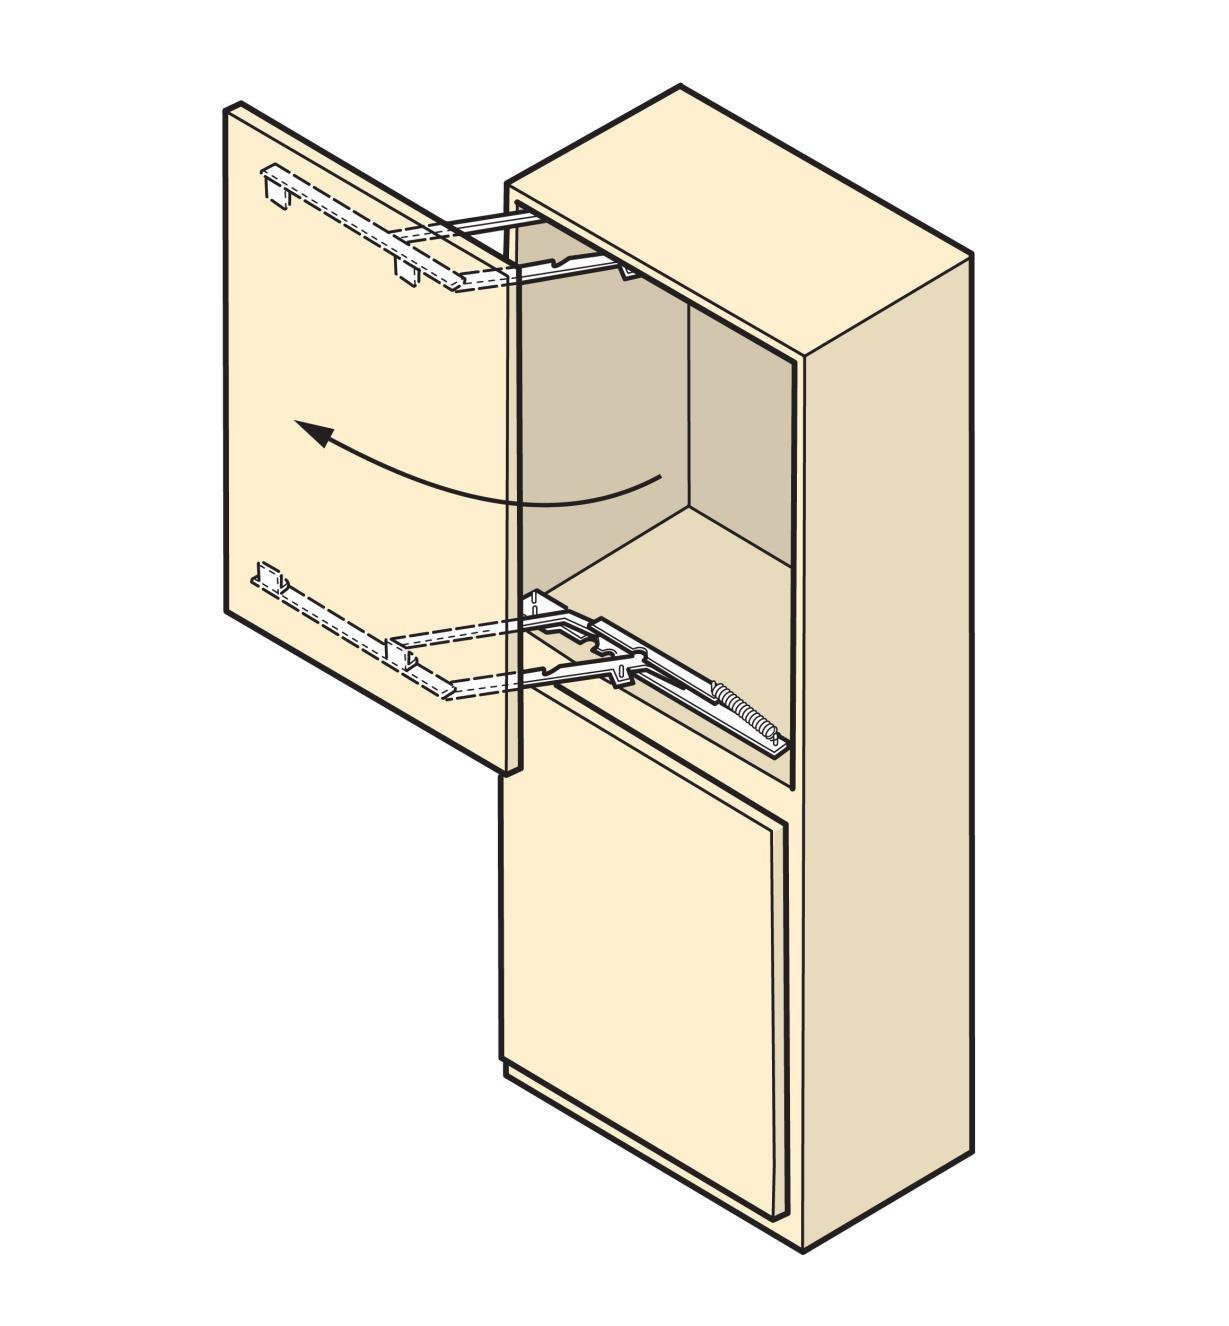 Illustration of a cabinet door that swings sideways, made with Parallock brackets